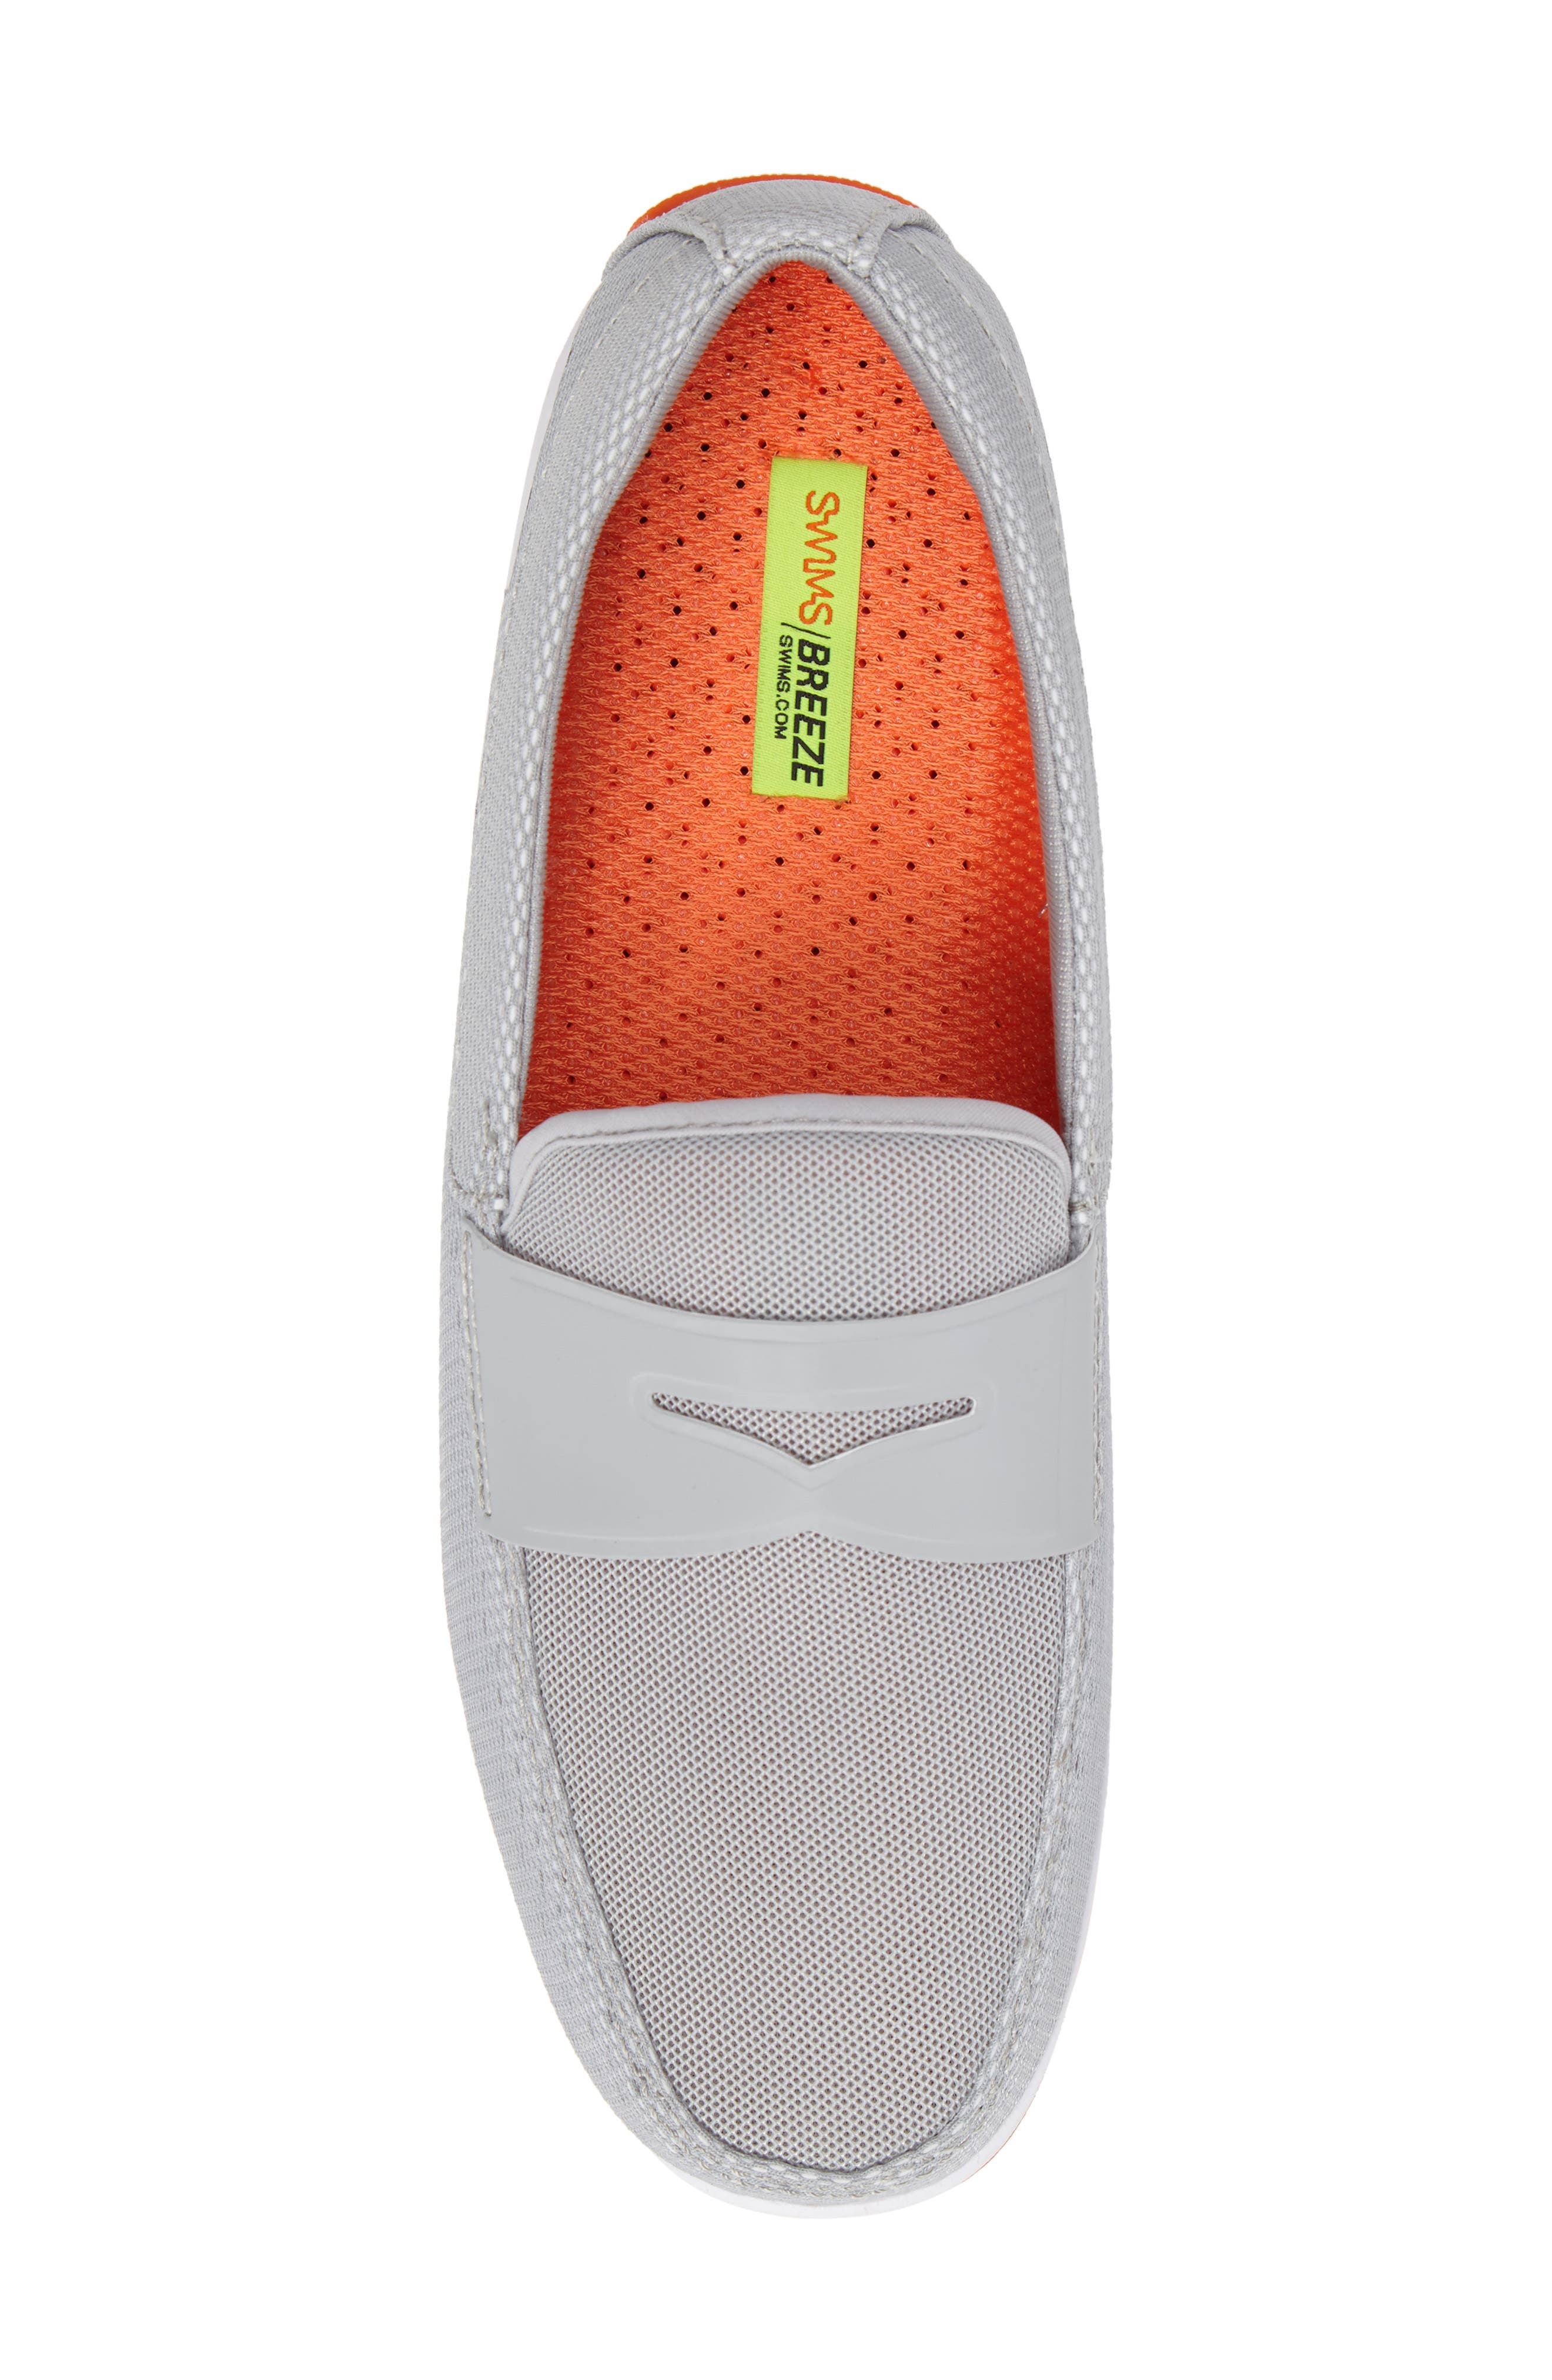 Breeze Penny Loafer,                             Alternate thumbnail 23, color,